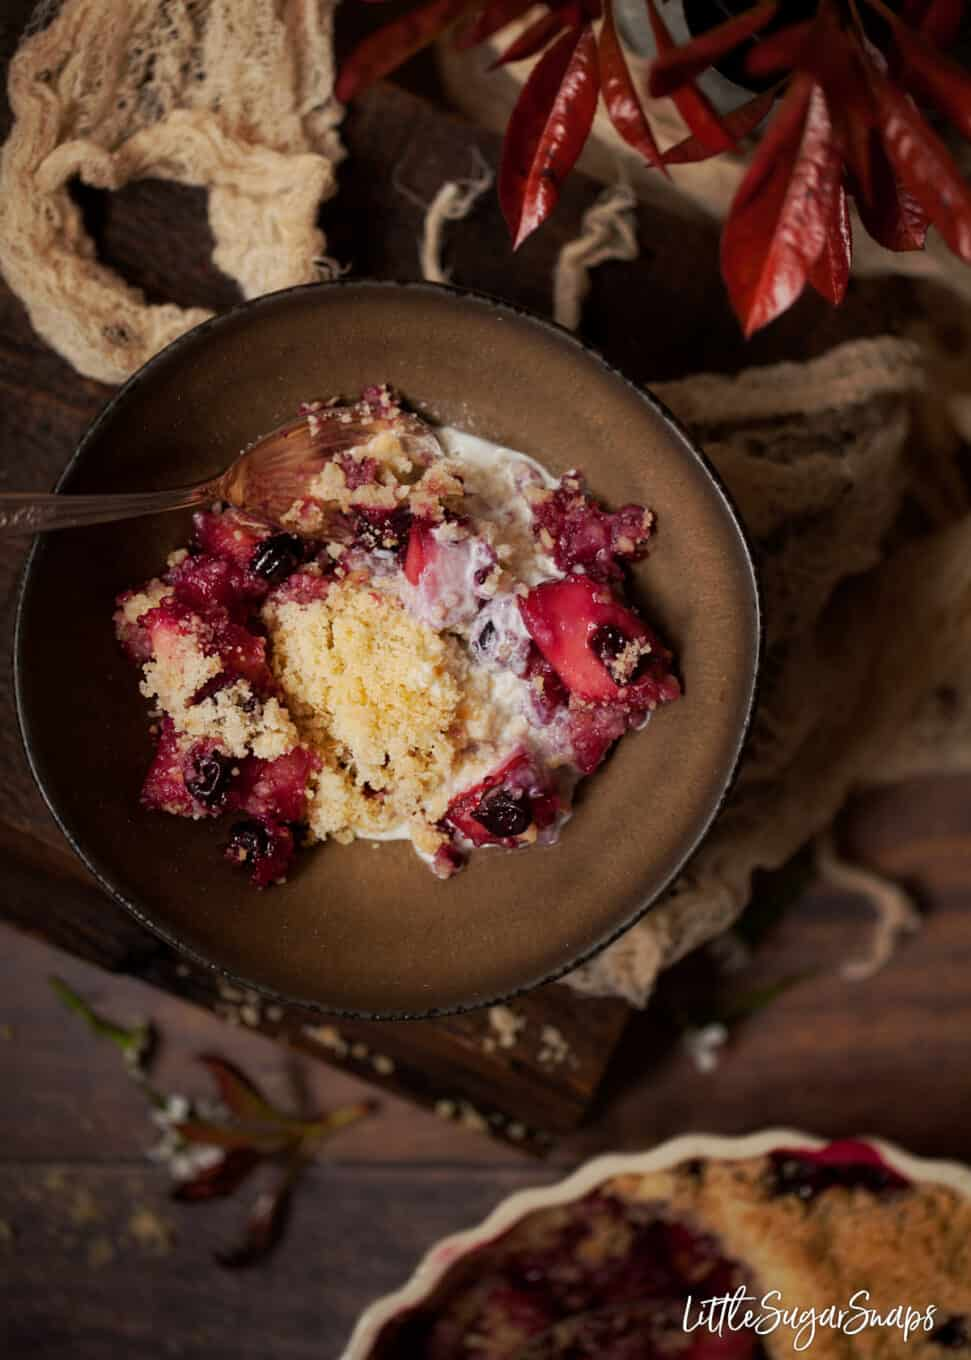 A bowl of blackcurrant crumble in a bowl with single cream poured over it. Rustic setting